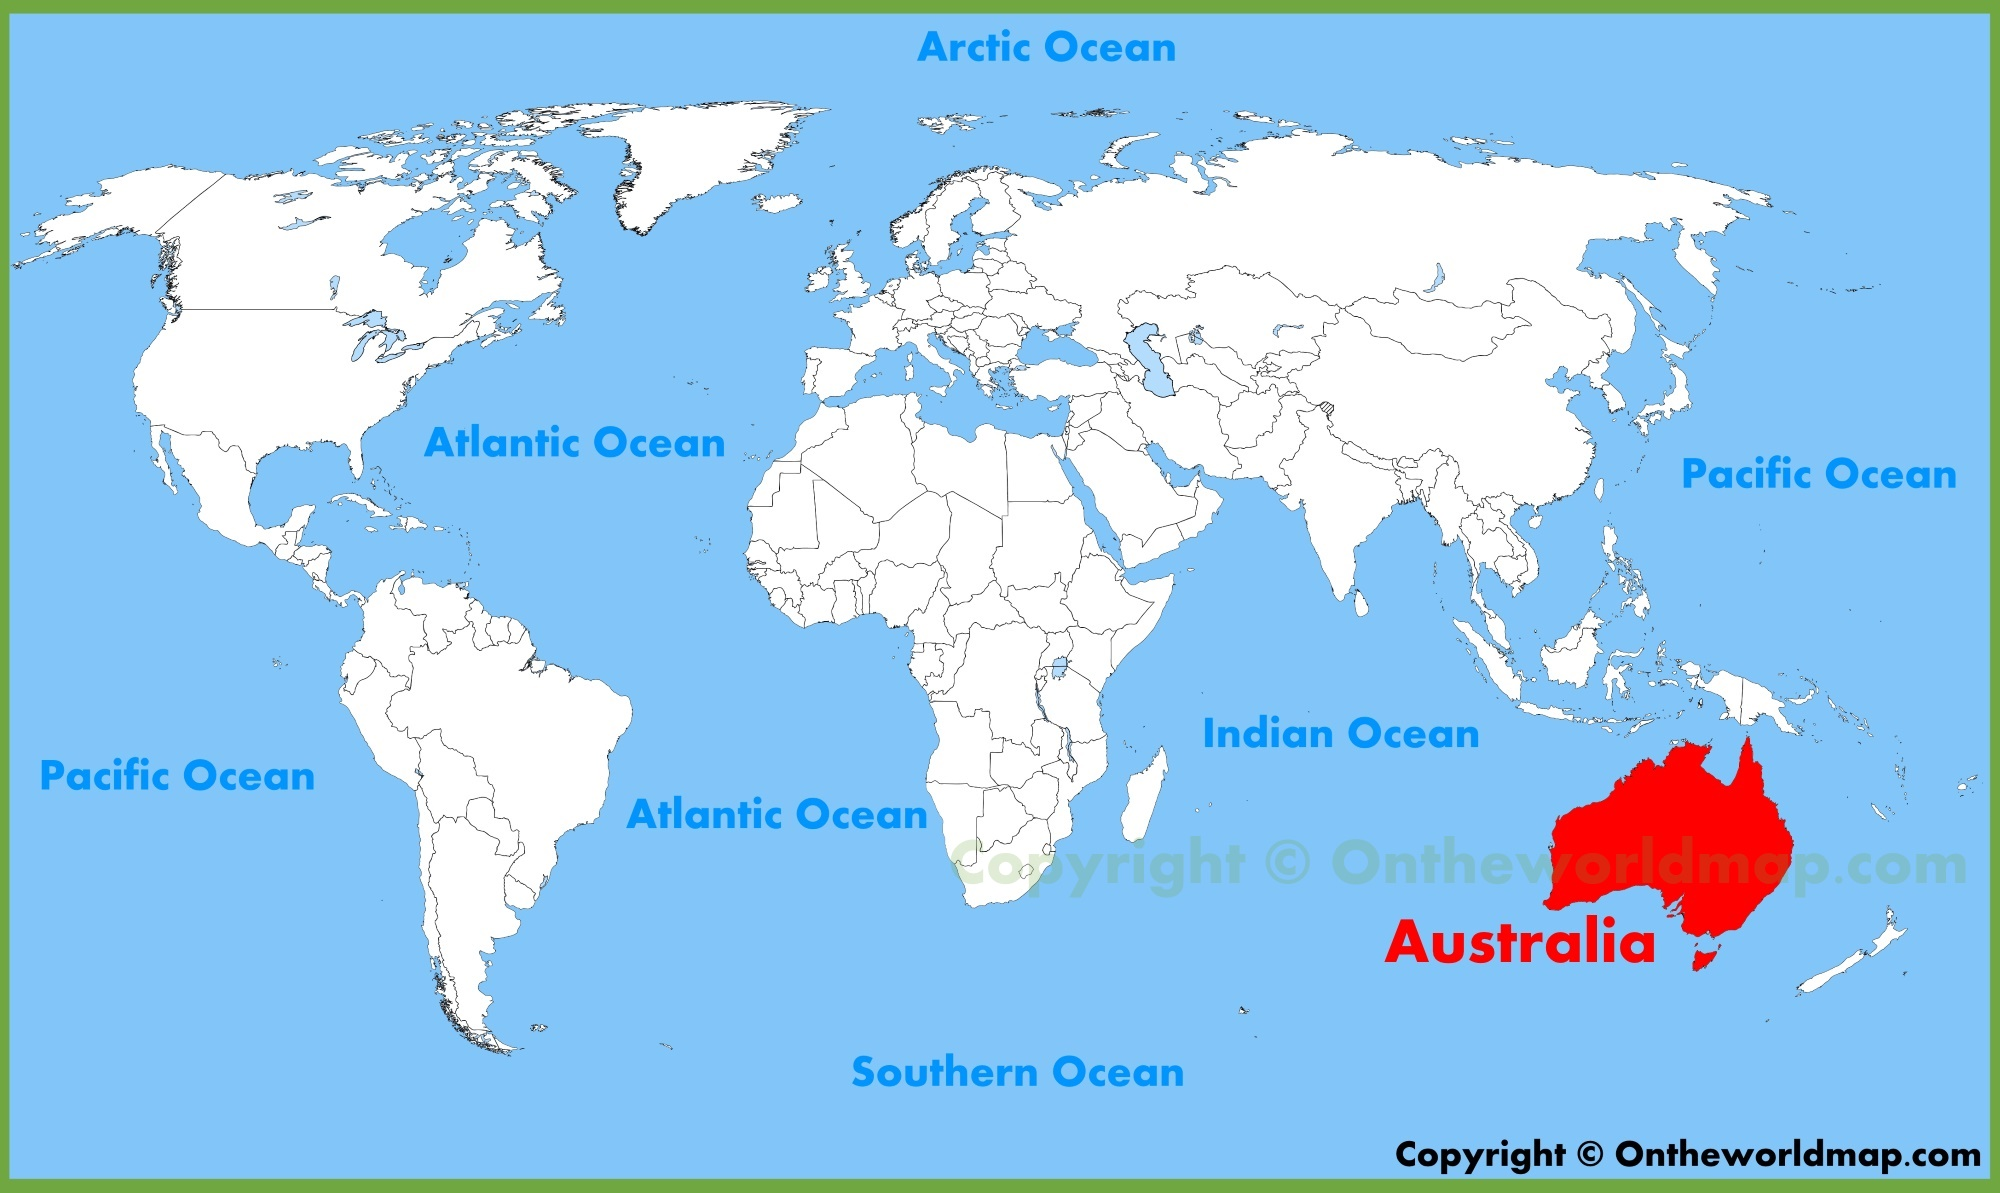 Austrailian world map roho4senses australia location on the world map gumiabroncs Gallery